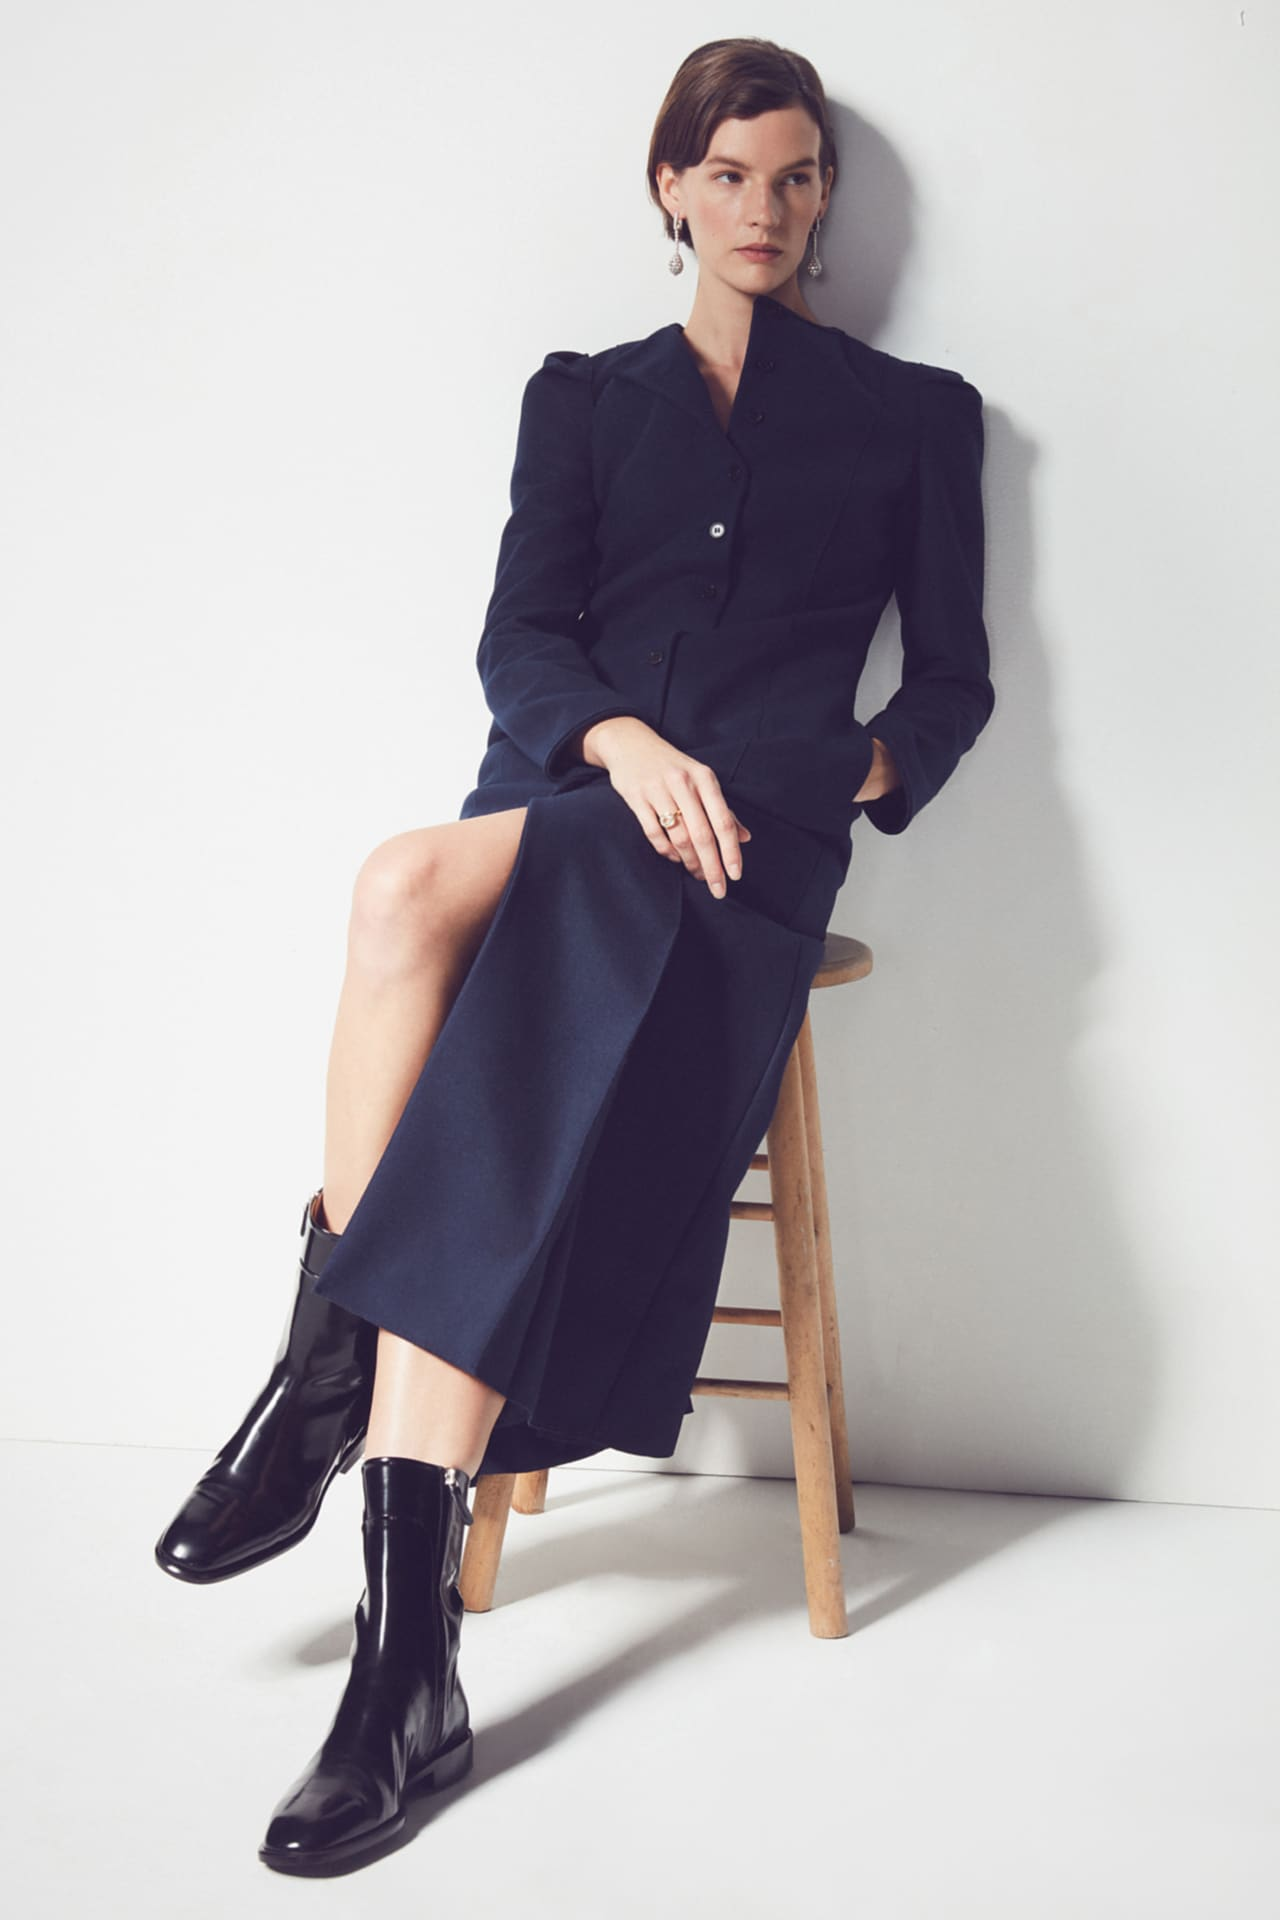 Brock Collection pre-fall 2019